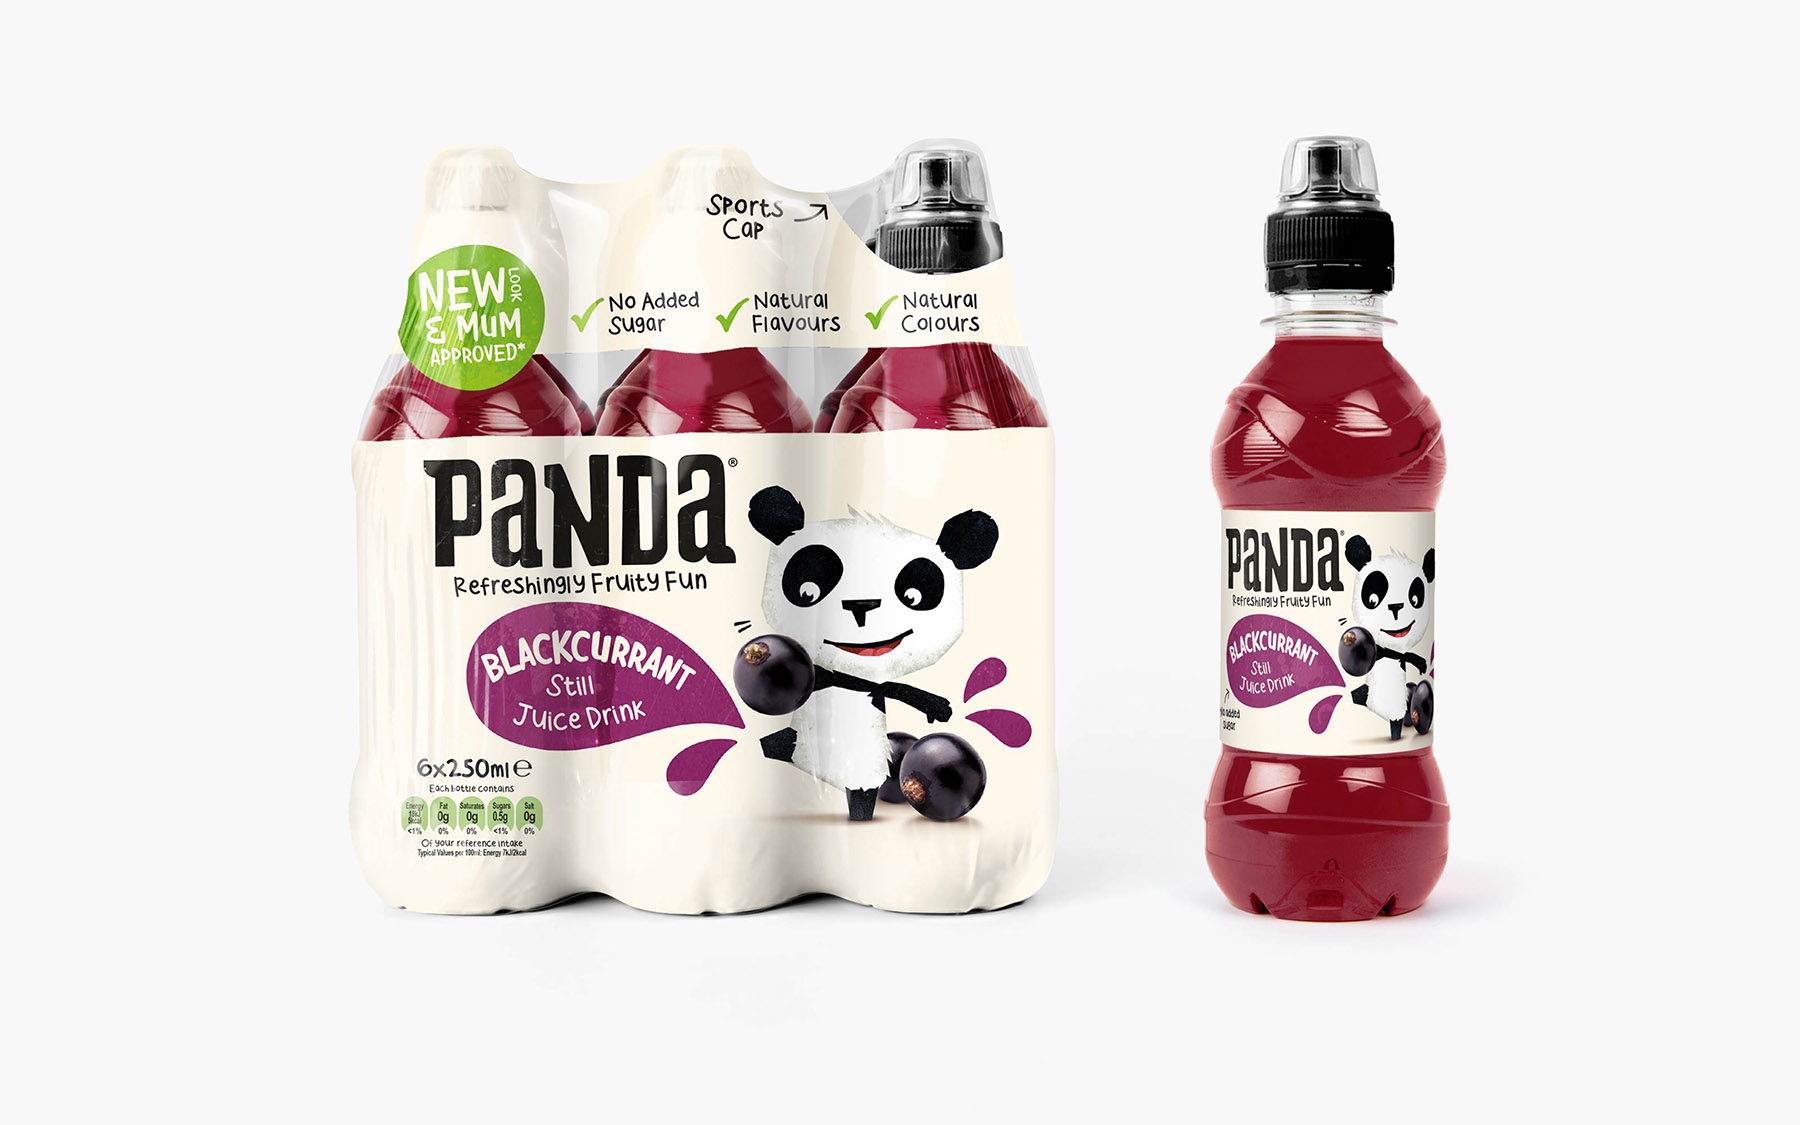 Panda-Web-Pages-3200-x-2000-BlackcurrantJuice4